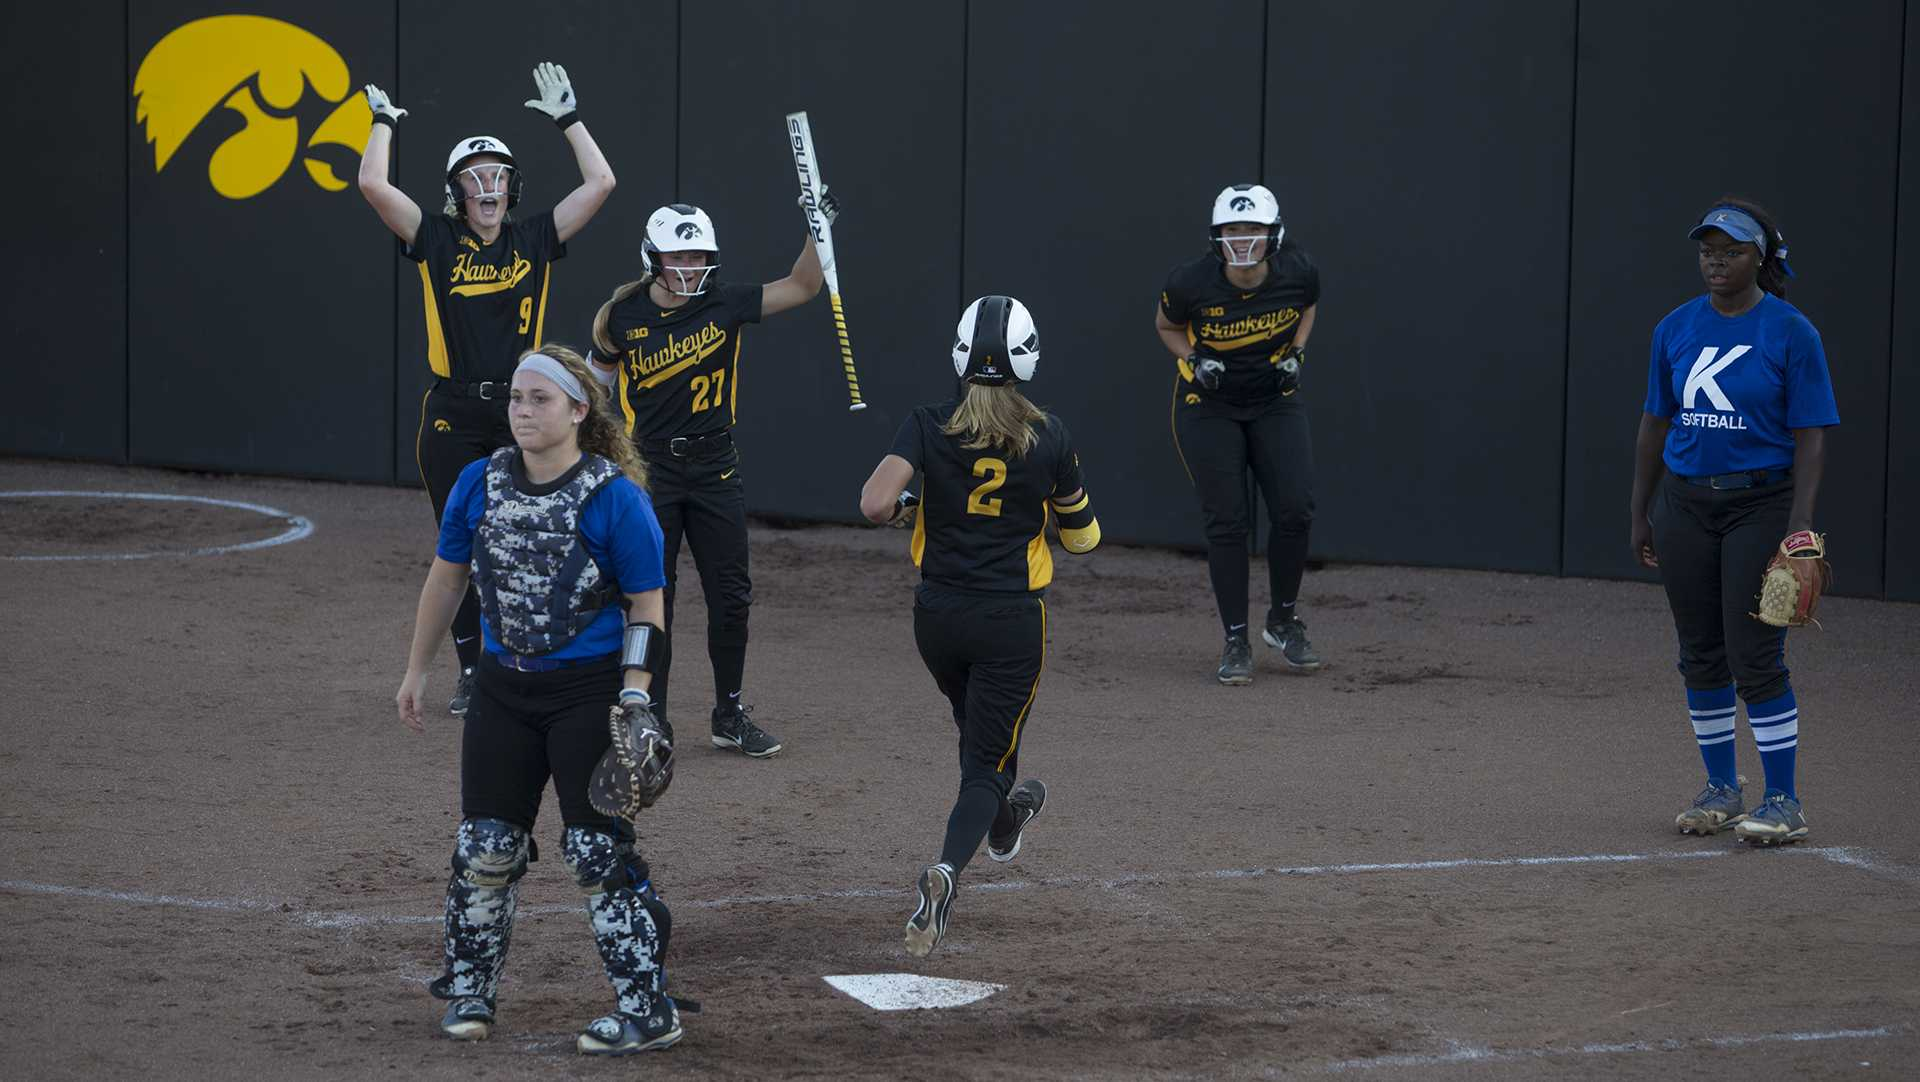 Hawks cheer as Aralee Bogar makes last of many home runs in a row at the Pearl Field Hawkeye Softball complex on Friday, Sept. 22, 2017. Hawkeyes defeated Kirkwood Community College 5-3. (Ashley Morris/The Daily Iowan)